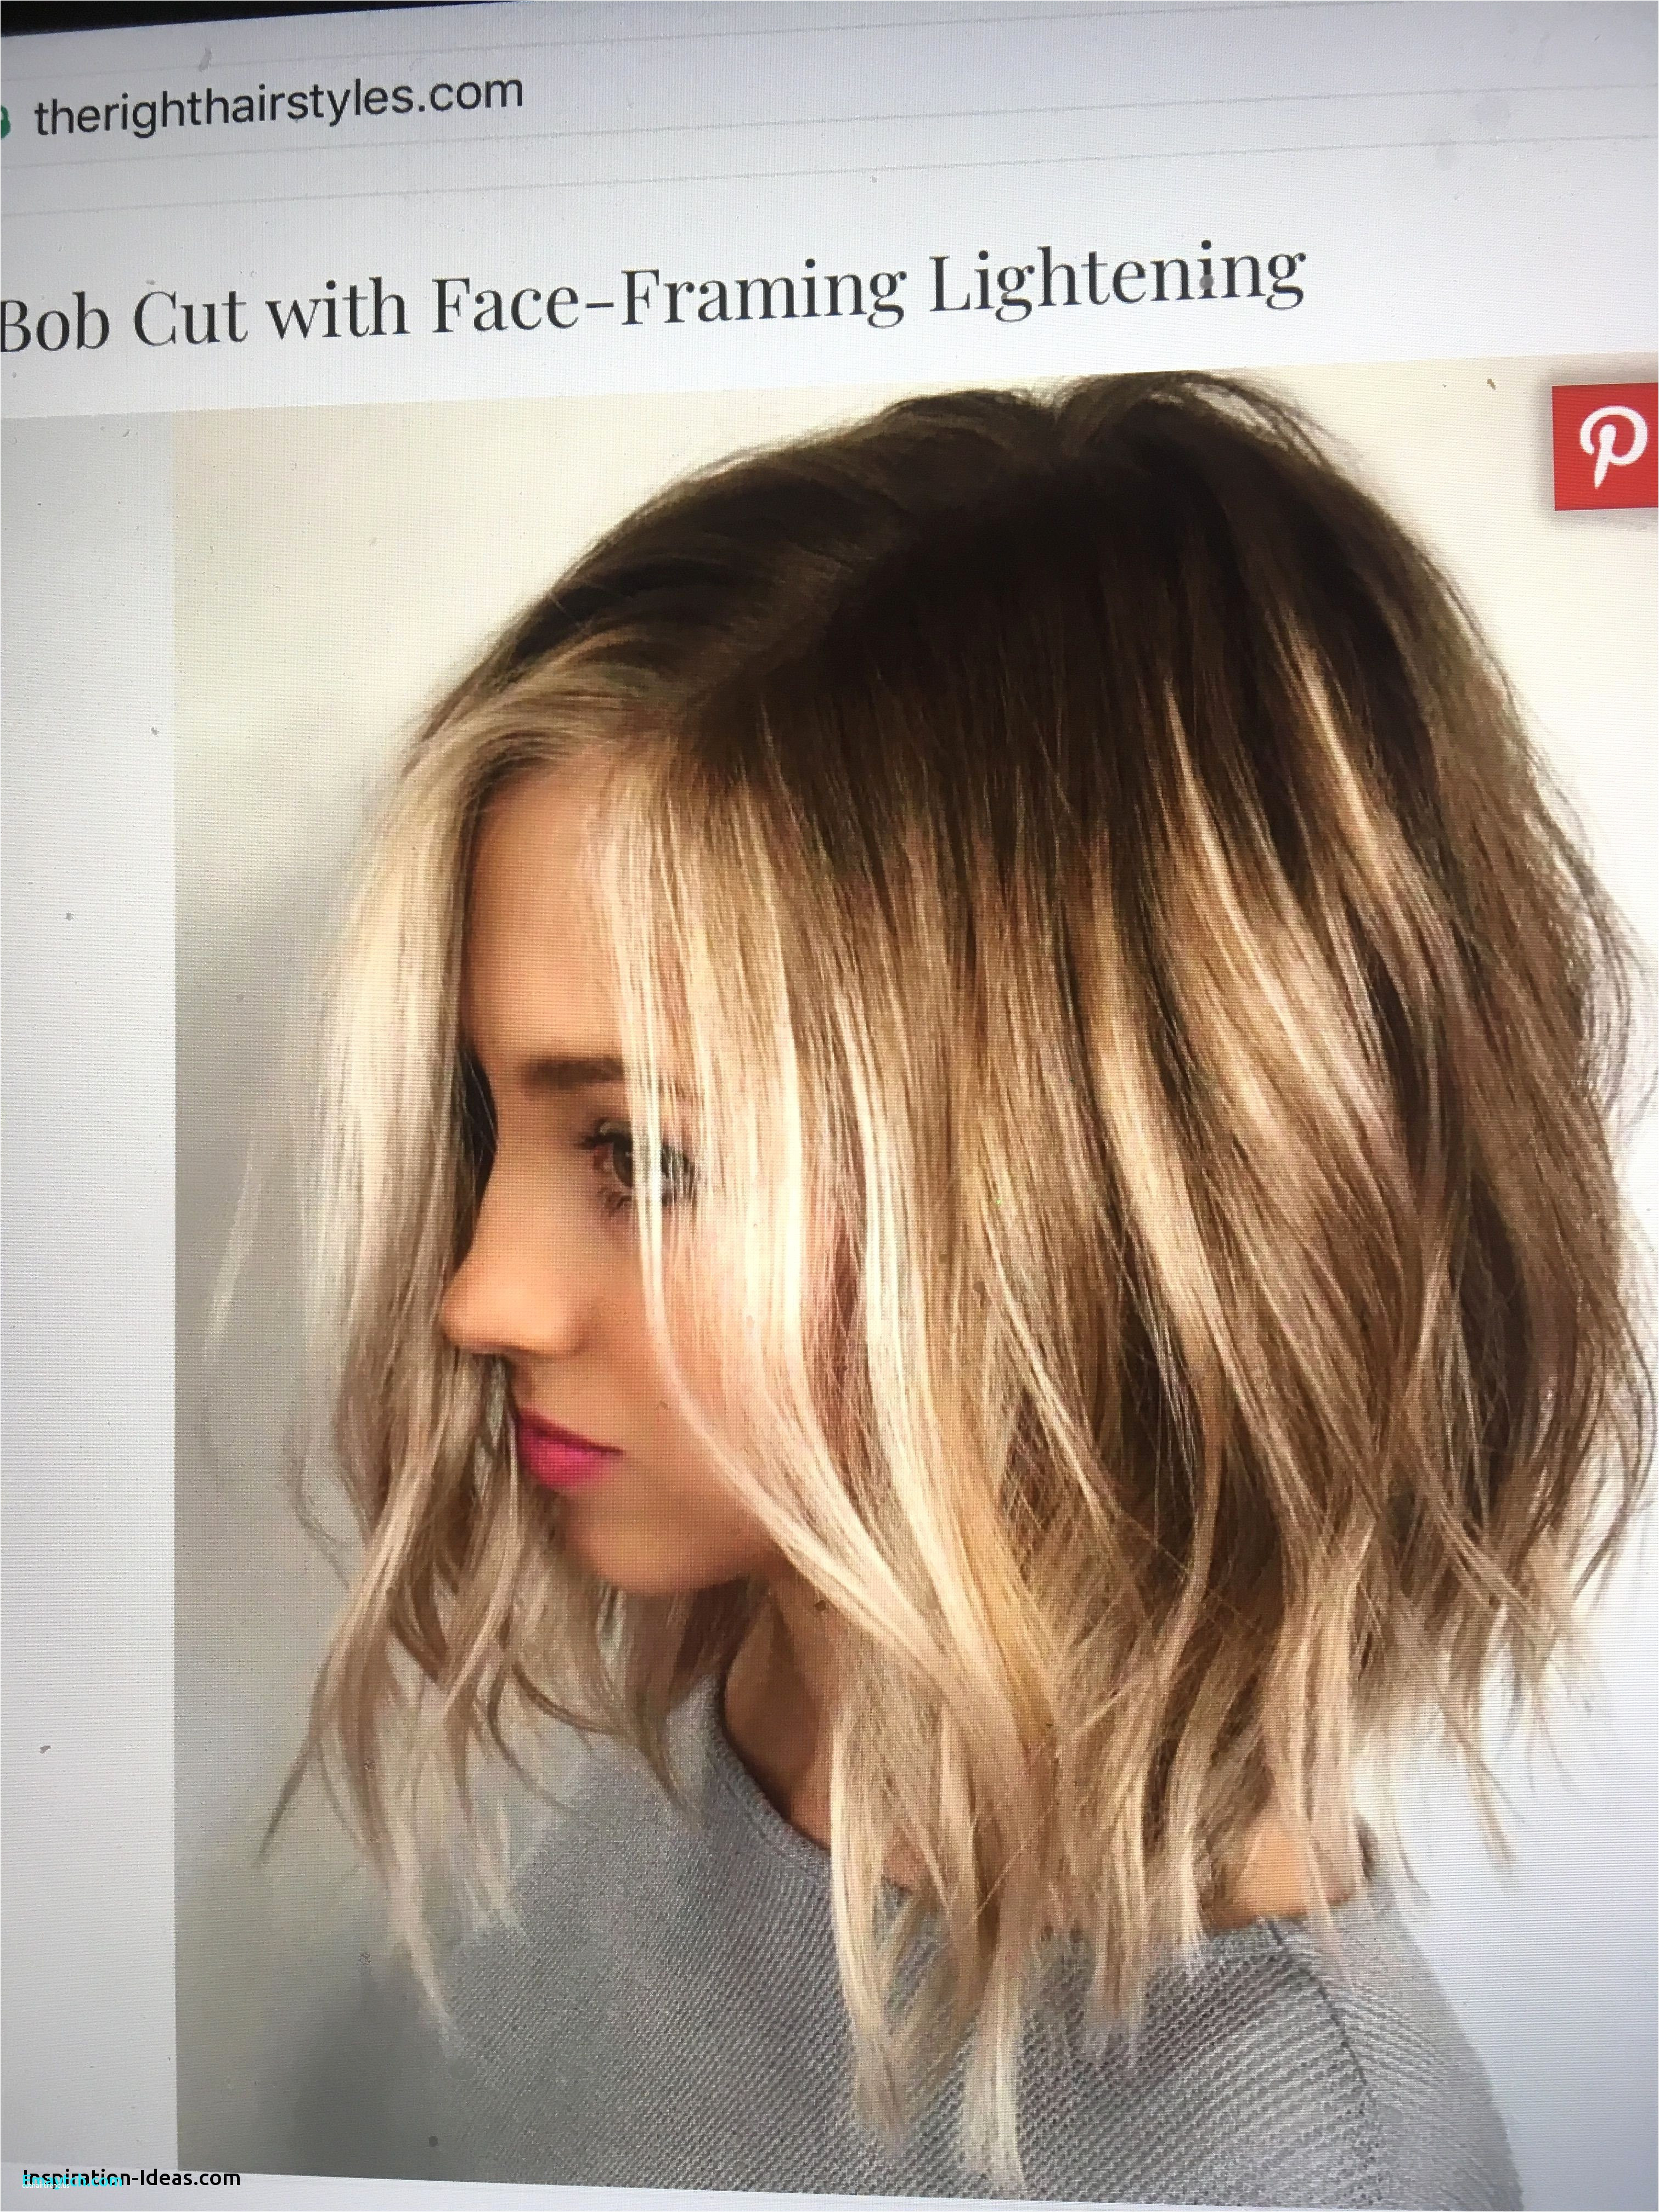 Grey Hair Styles Inspirational 10 Short Hairstyles for Fine Grey Hair Over 60 Emaytch